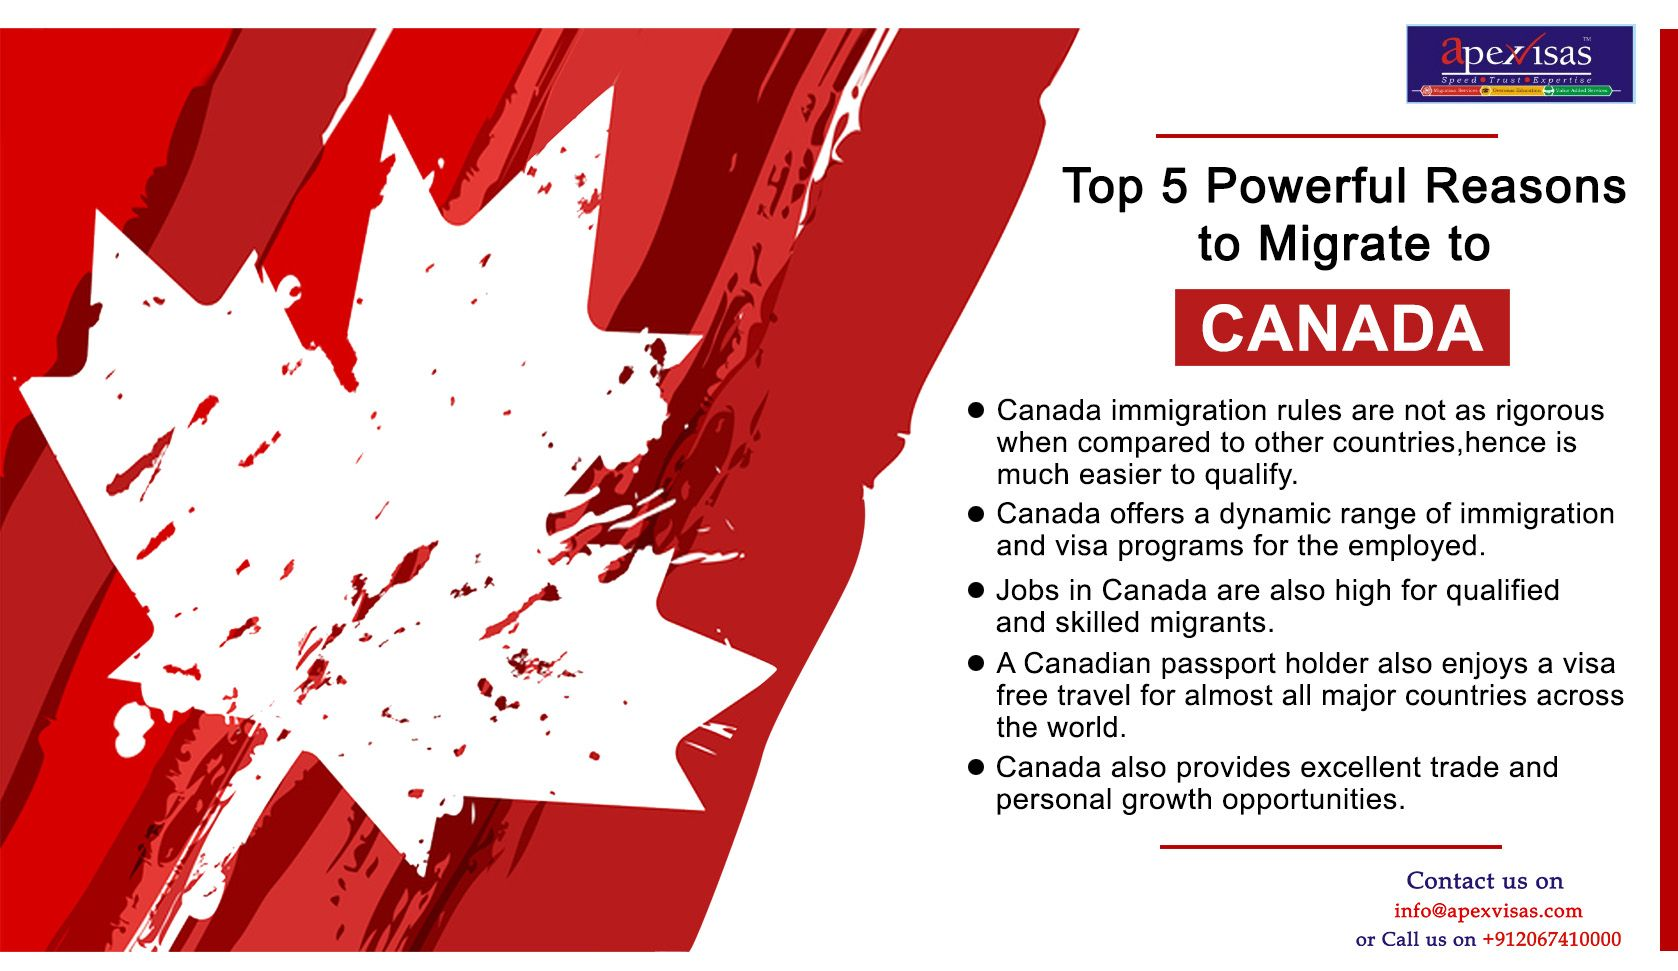 Top 5 Powerful Reasons to Migrate to CANADA. Apexvisas